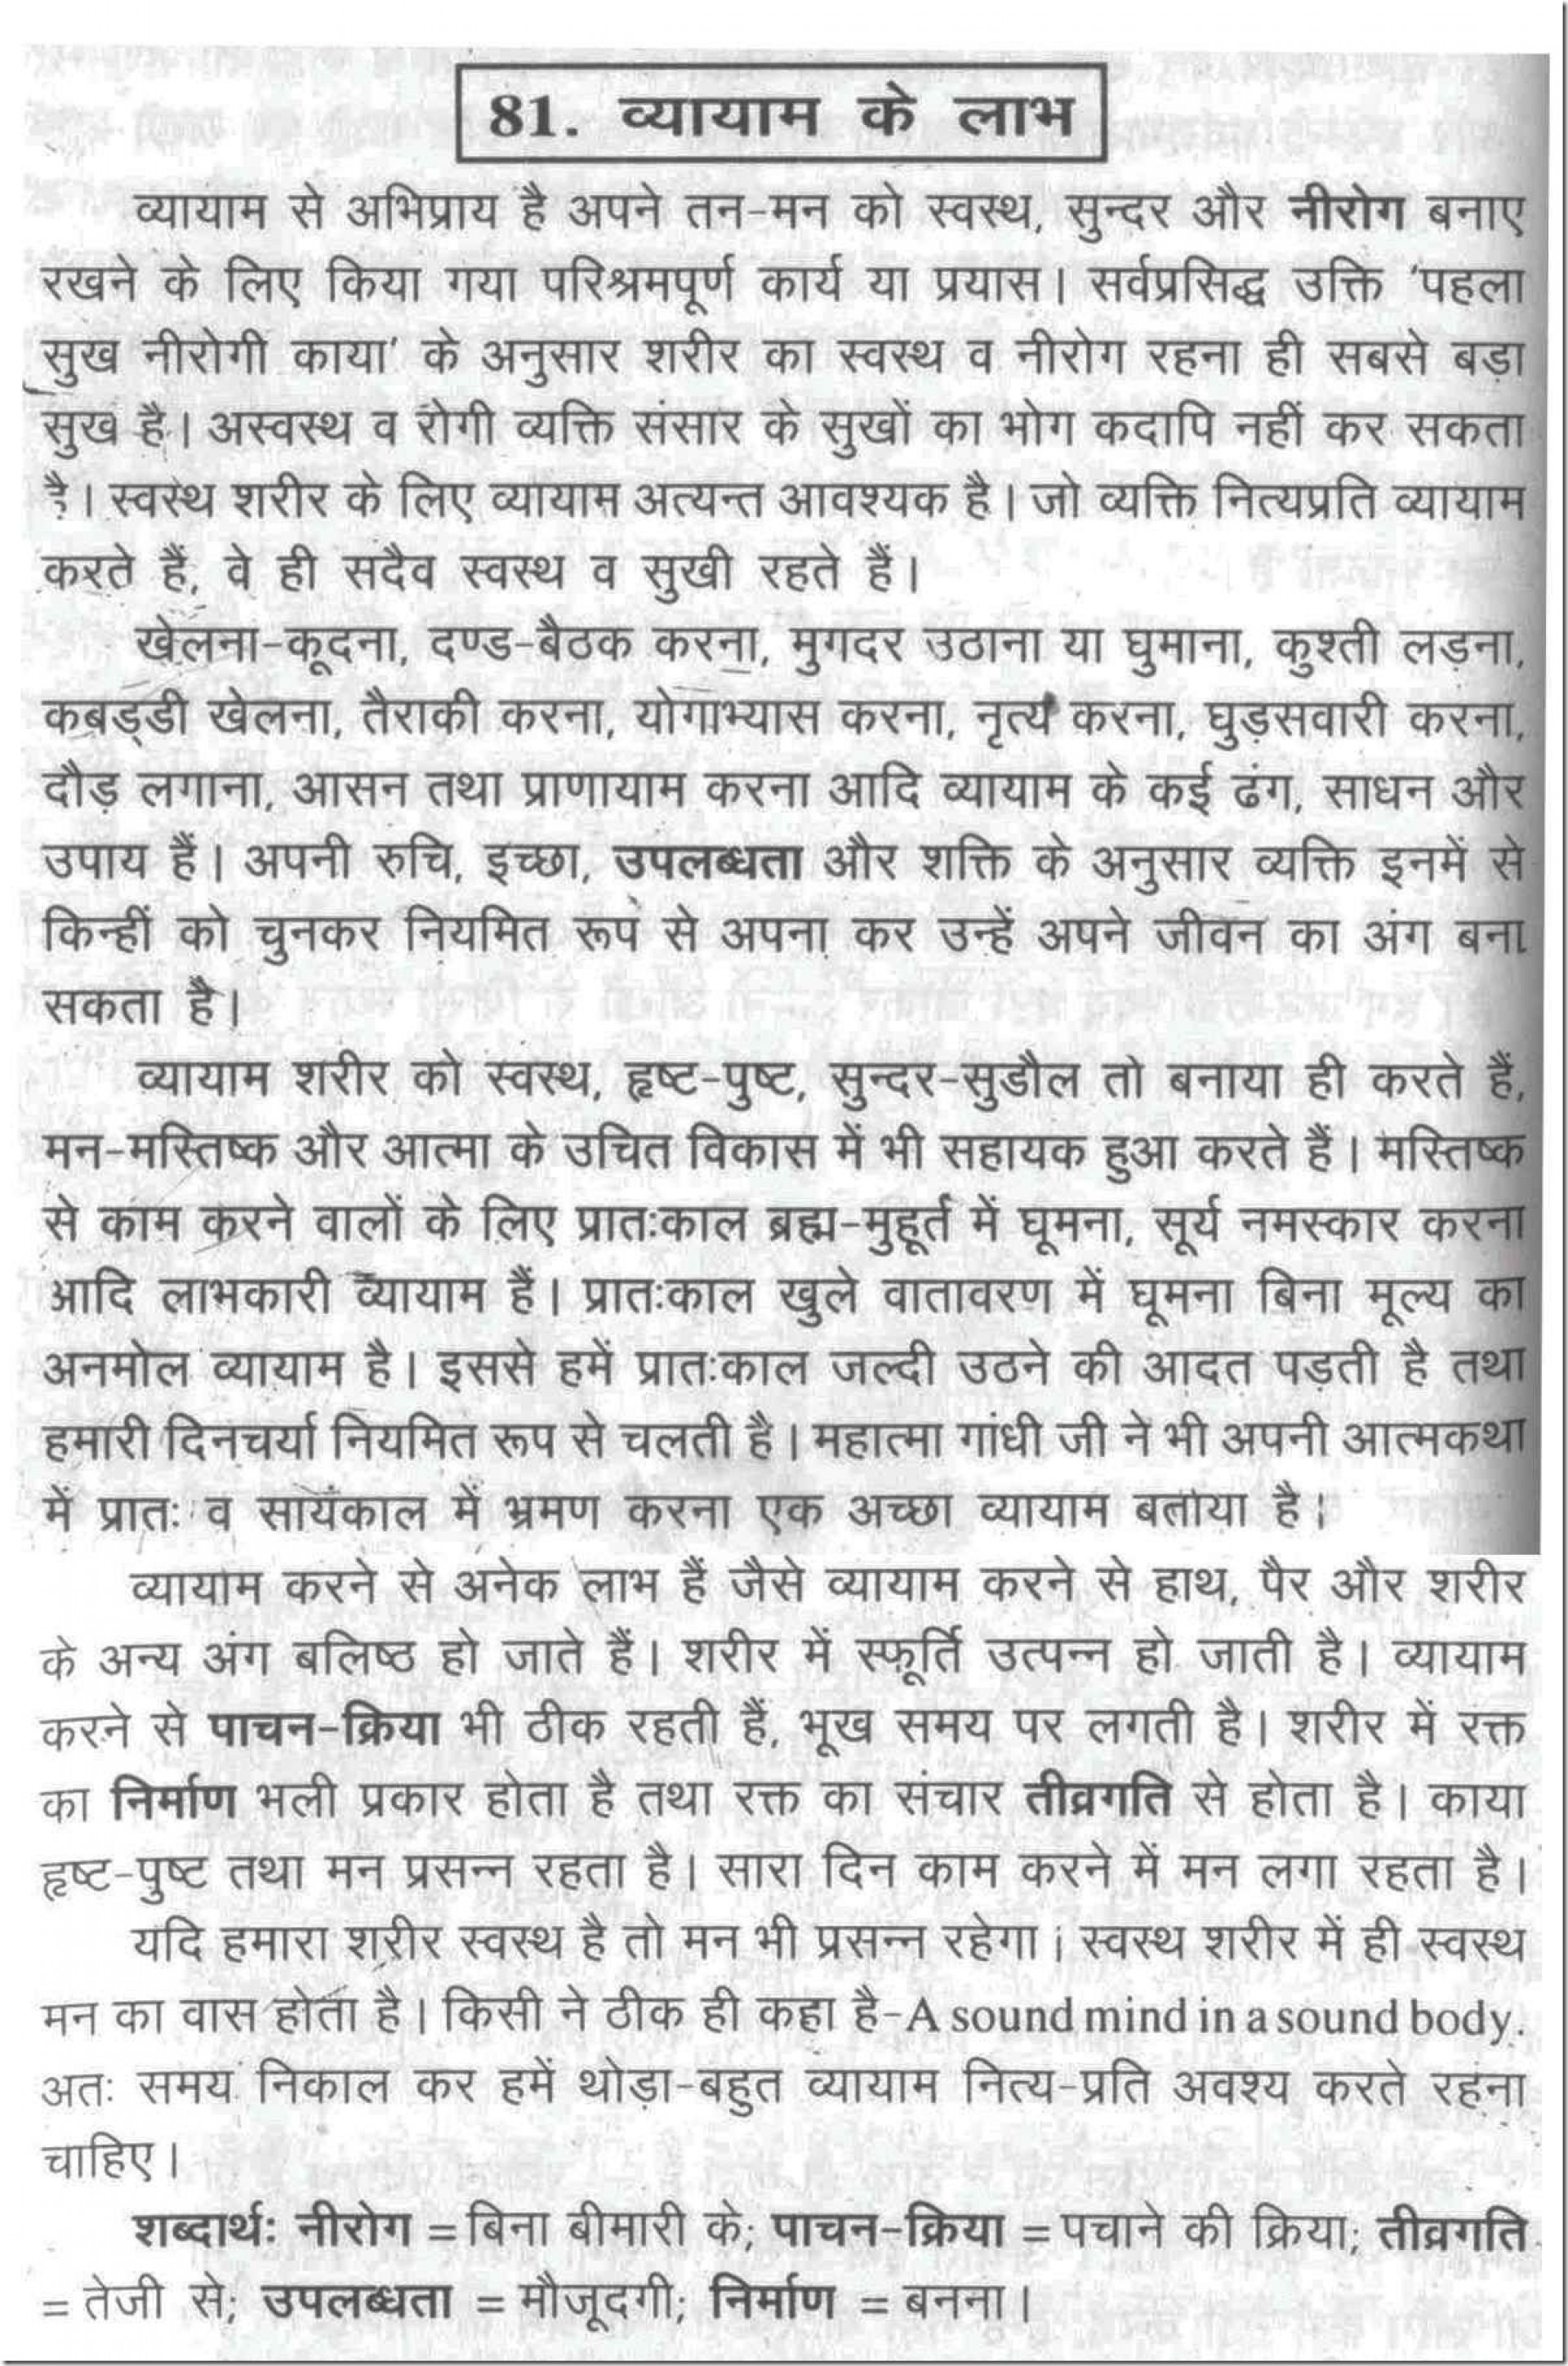 011 2563478896 Essay On Health And Fitness Through Food Good Habits In Hindi Exceptional Wikipedia 1920